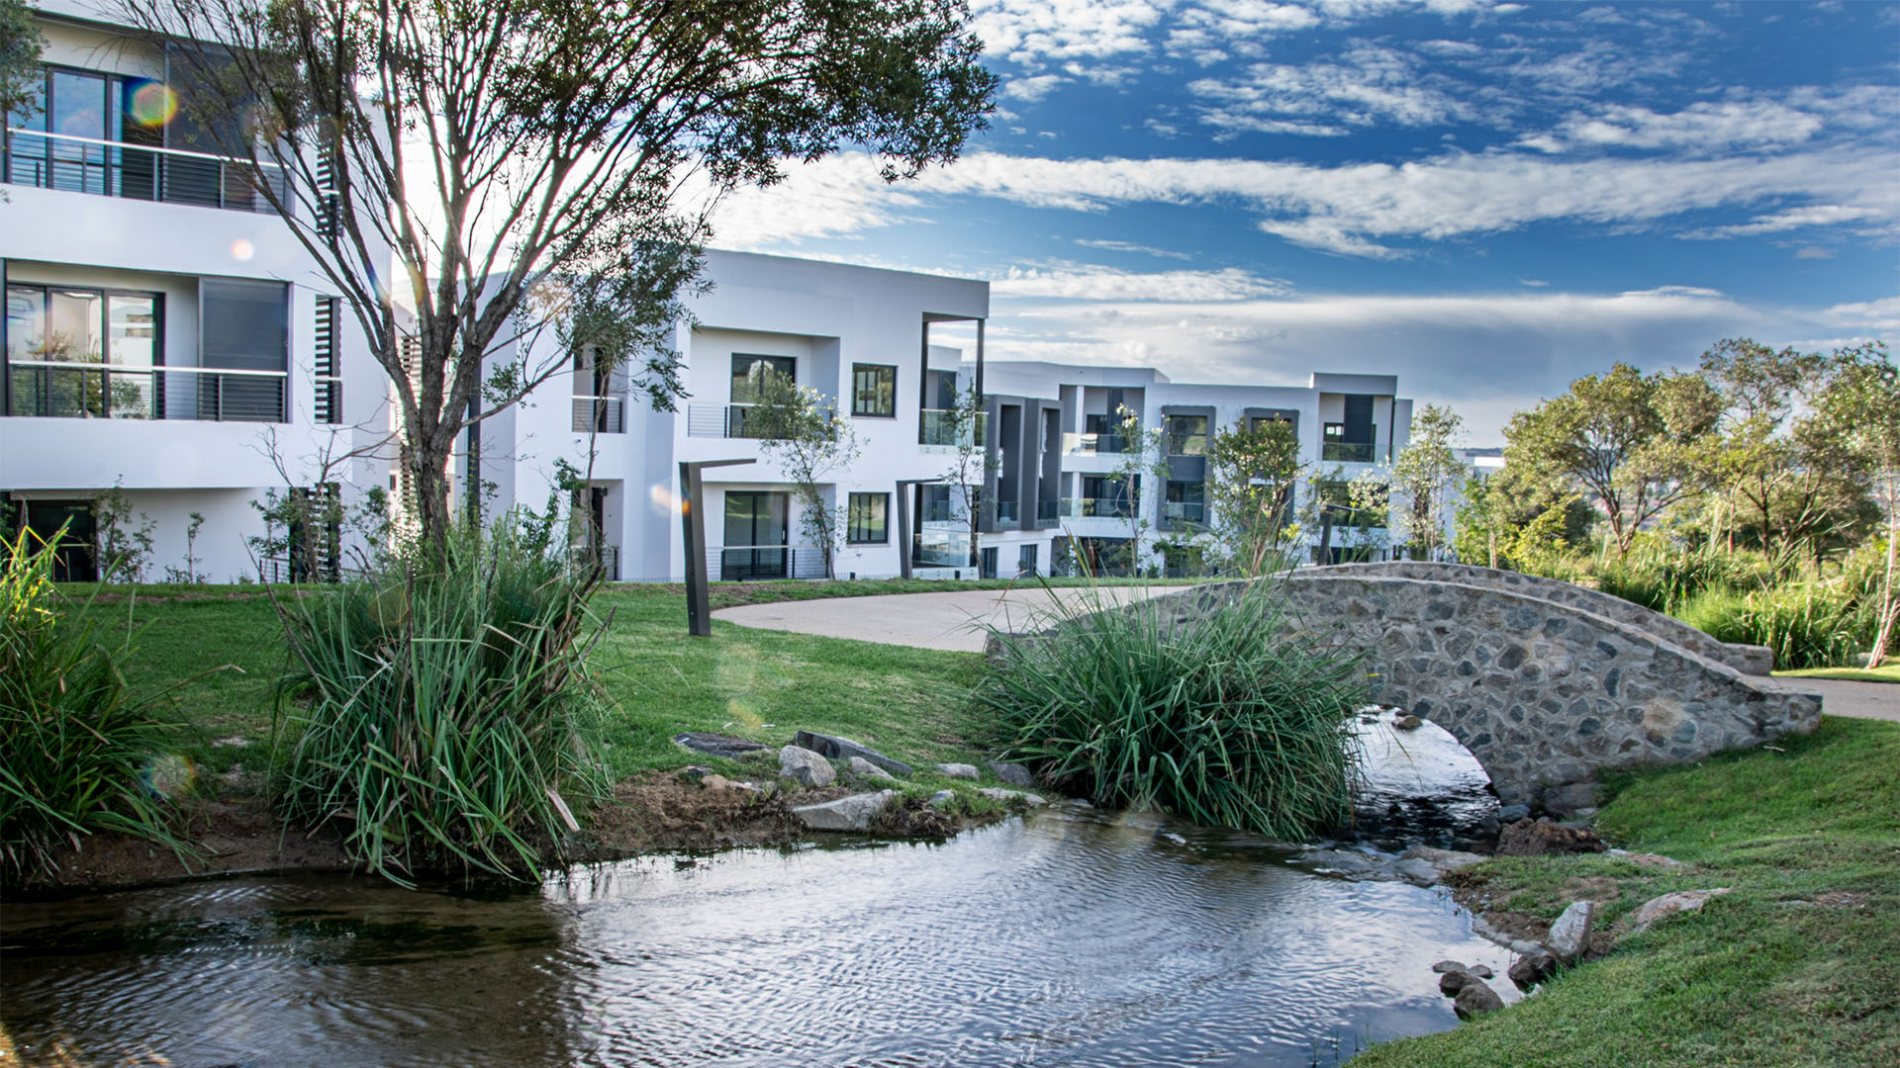 Midrand flexes its muscles